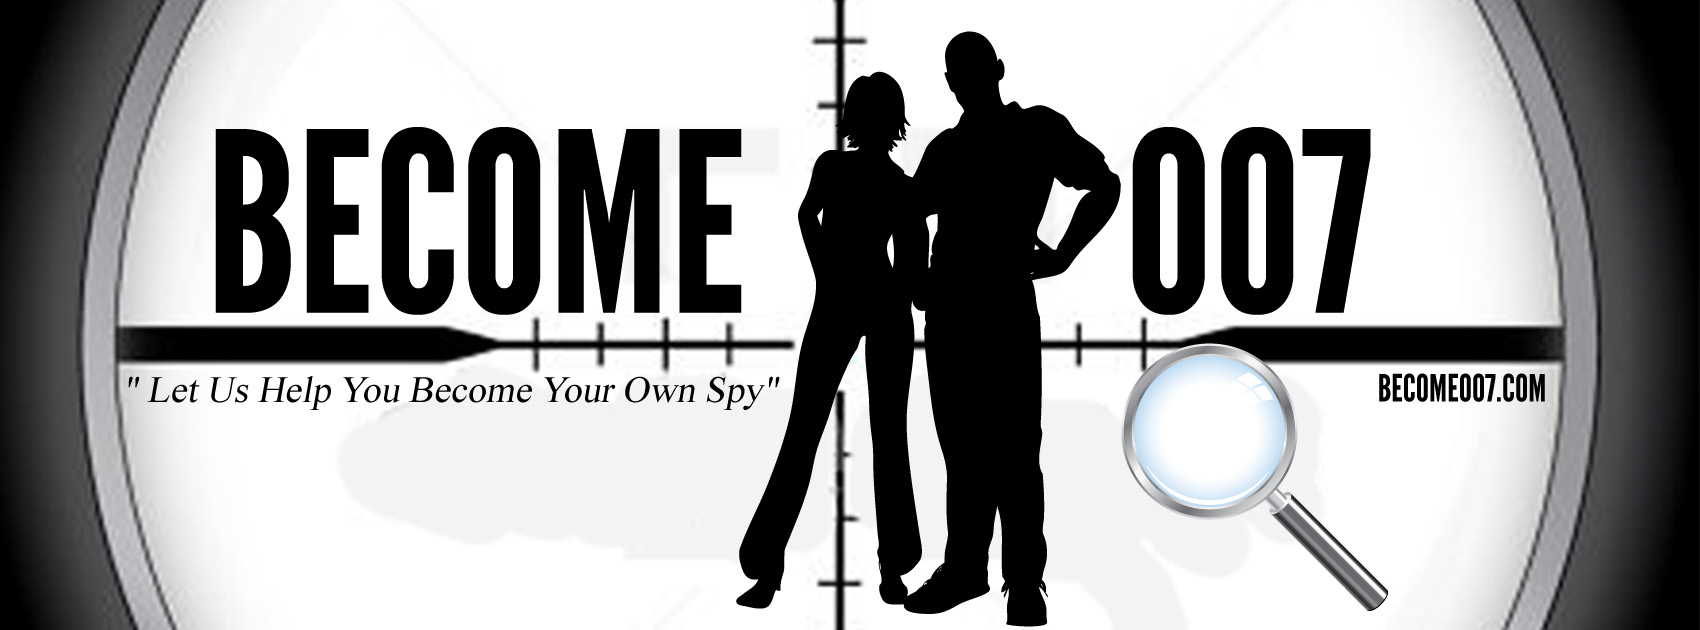 <blockquote>We Offer More Than Computer Security Services.  Let Us Help With All Your Surveillance And Counter-Surveillance Needs. </blockquote>